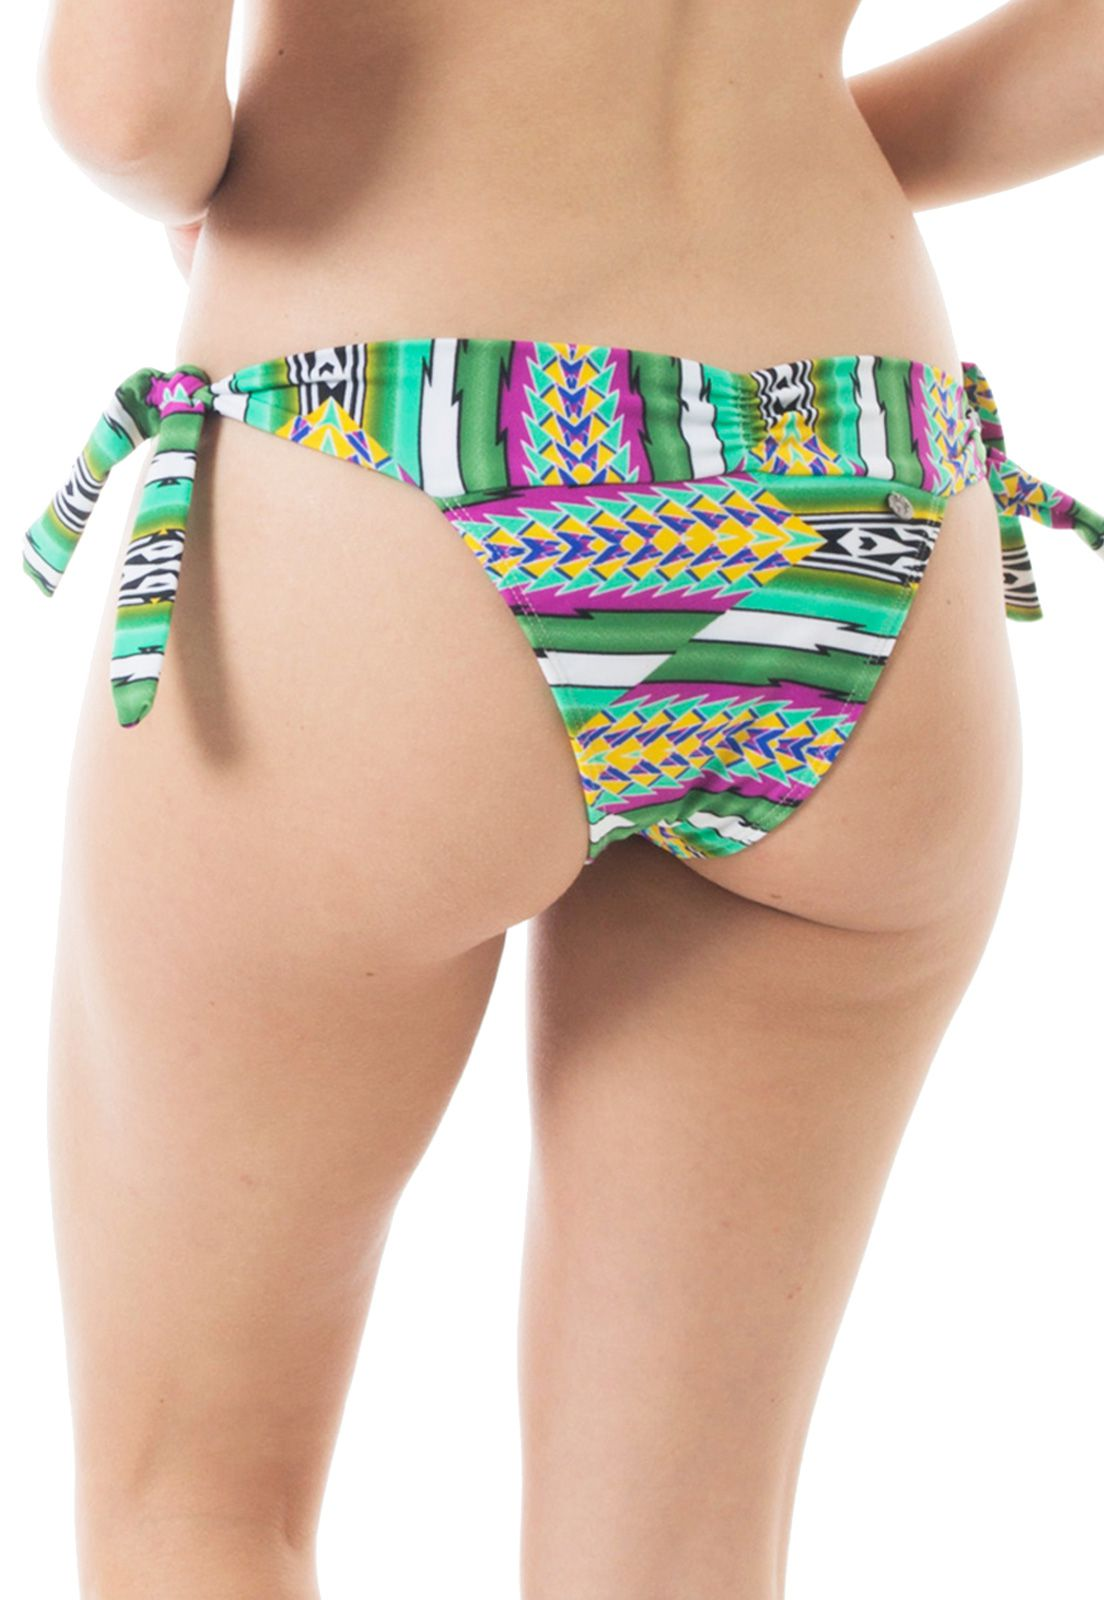 Biquíni Bottom Lacinho Flavia Donadio Beachwear Laguna-1 Estampado Verde